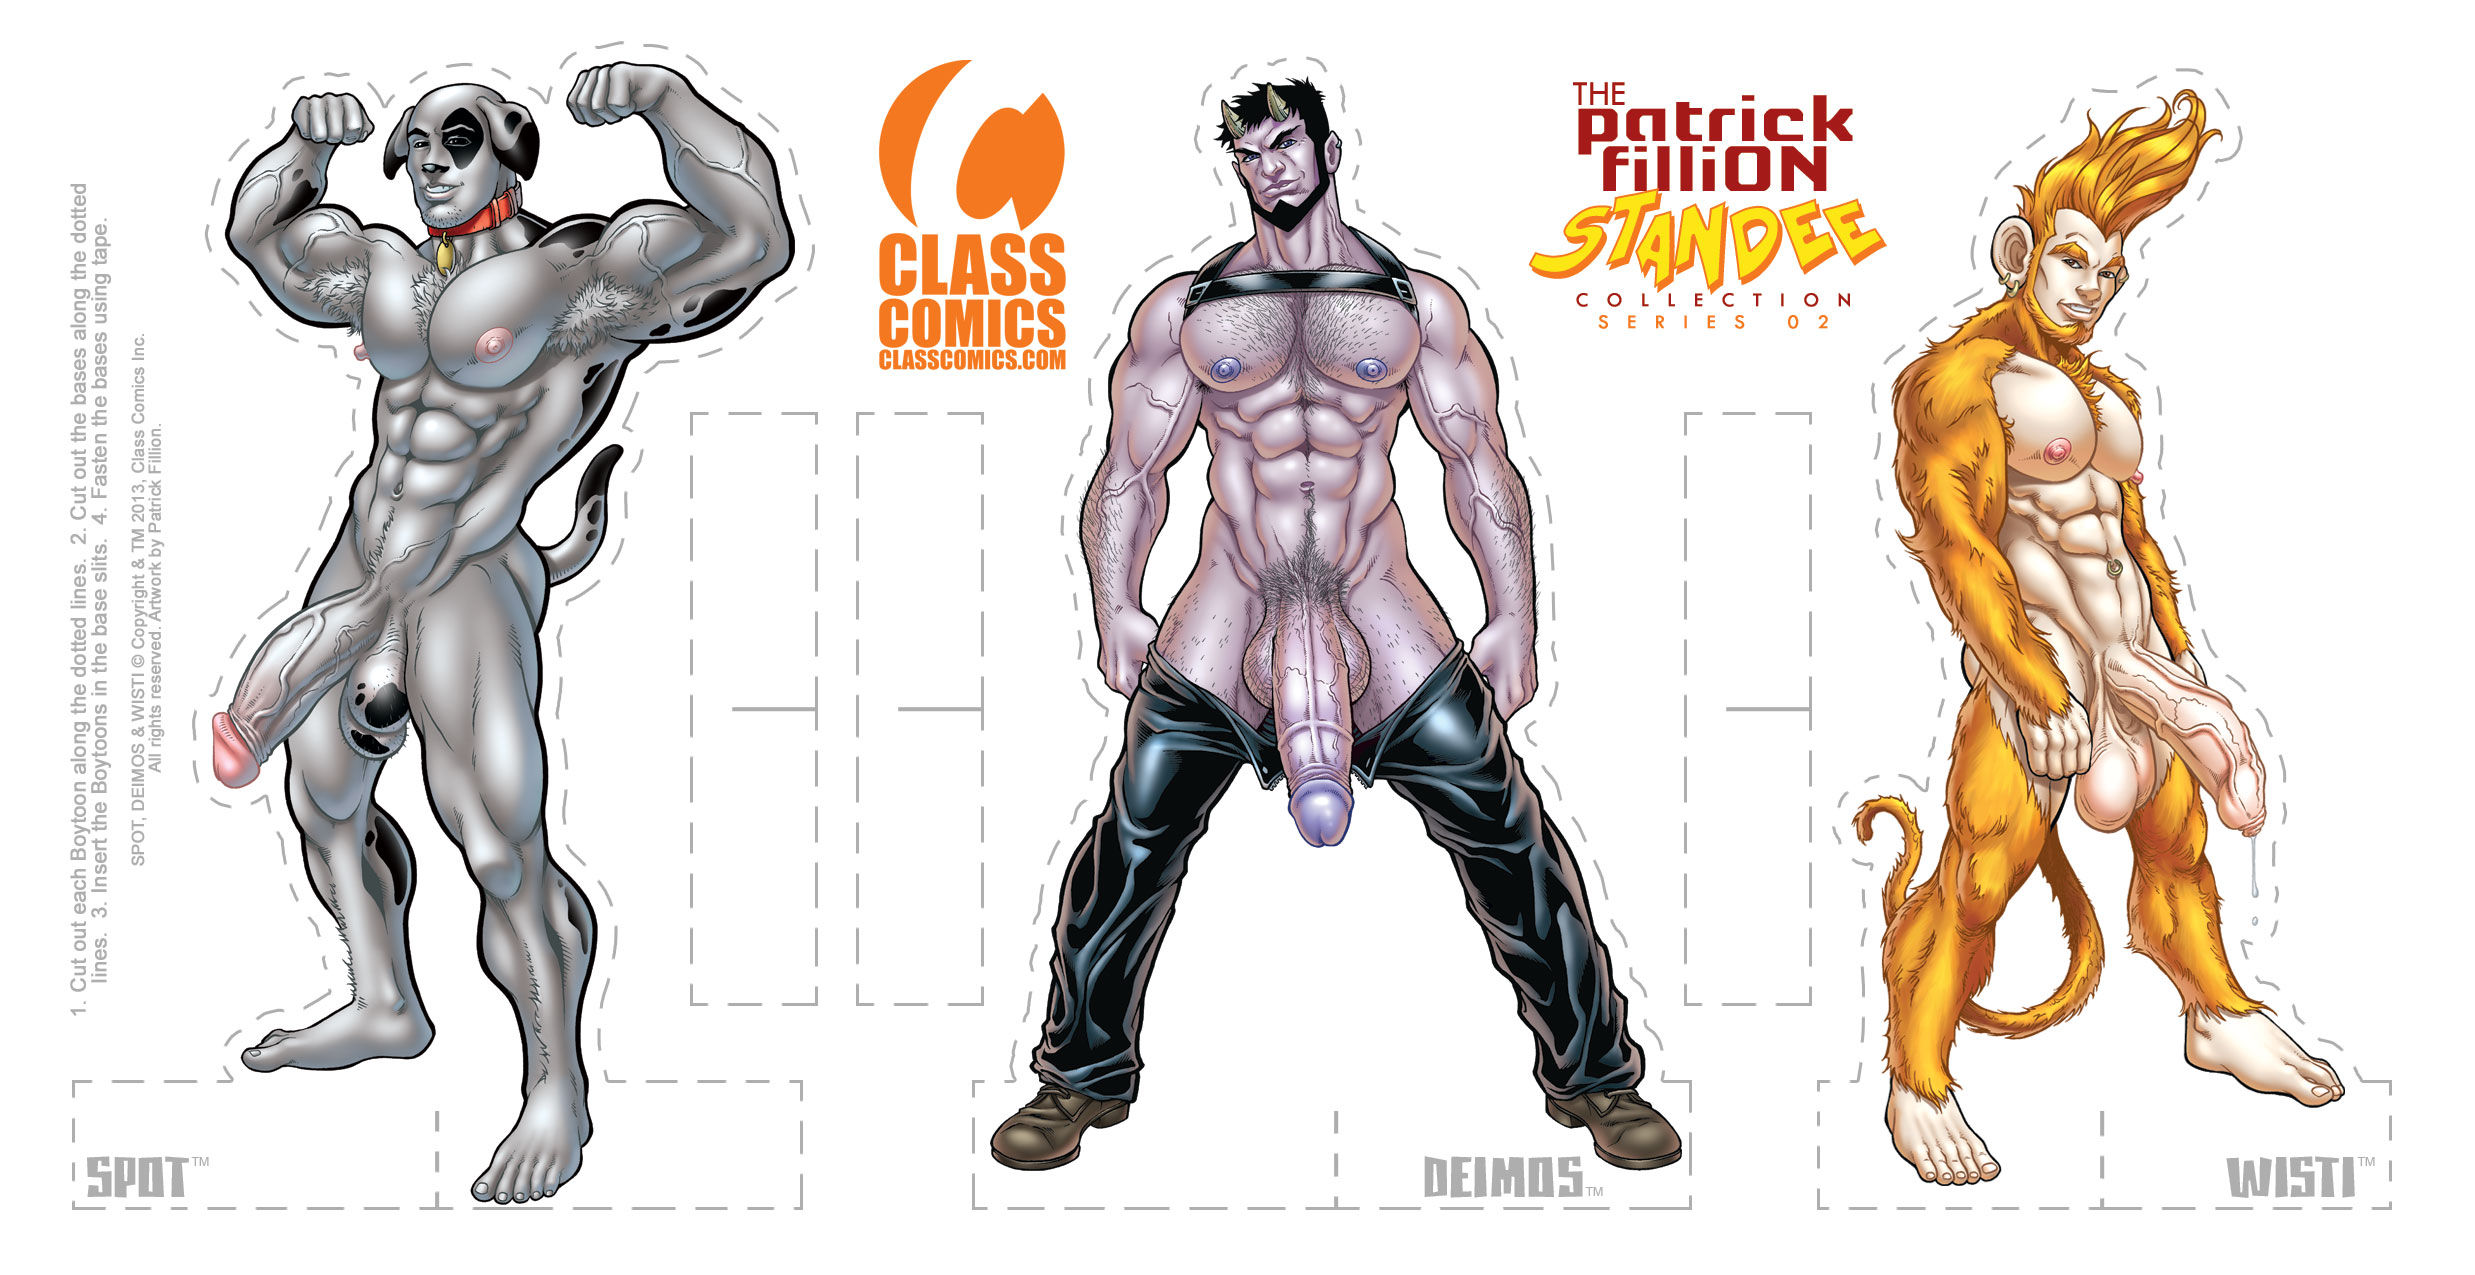 The PATRICK FILLION Standee Collection - Wave 02 PACK - Art by Patrick Fillion.